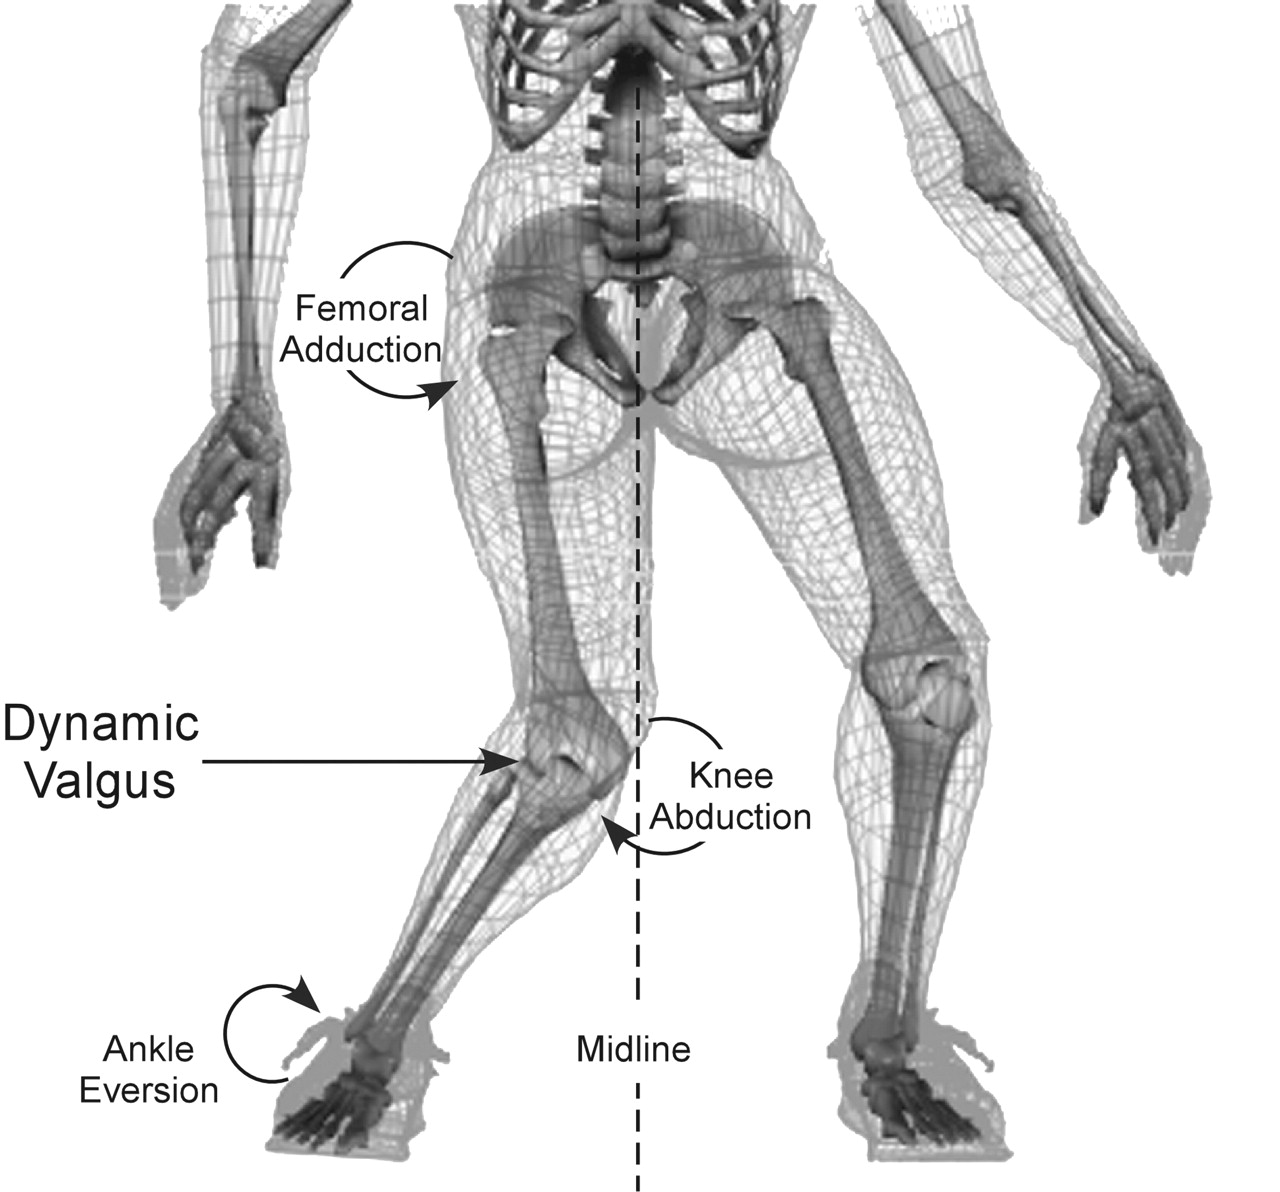 Single Leg Movement And The Lateral Sub System Articles Matt